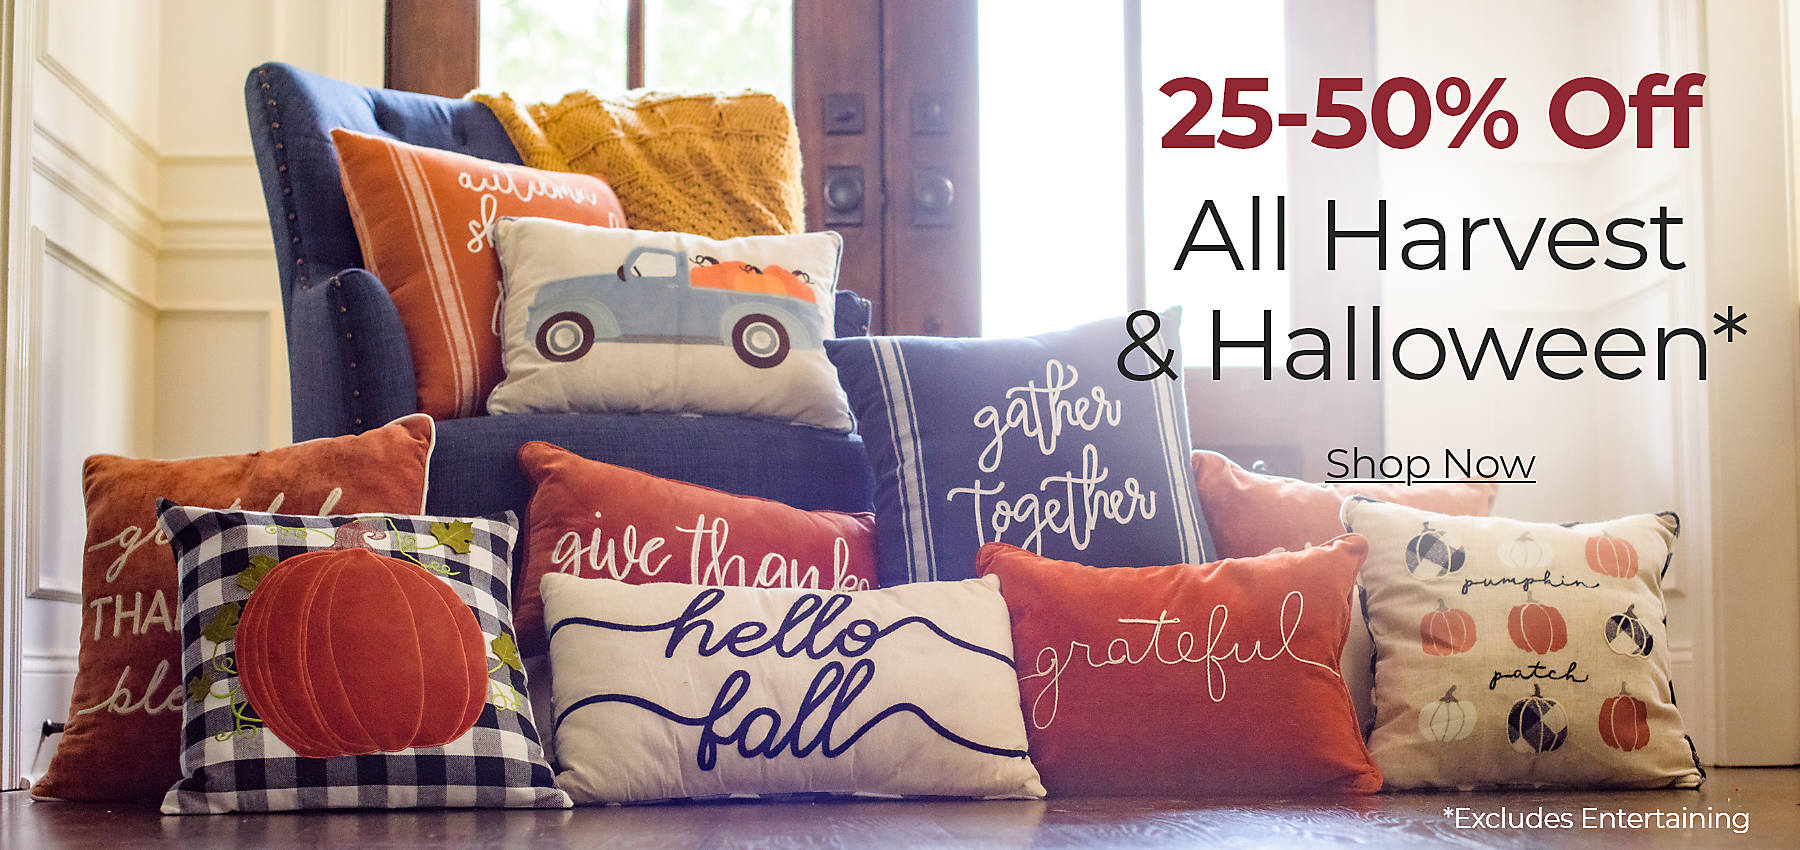 All Harvest & Halloween 25-50% Off Excludes Entertaining